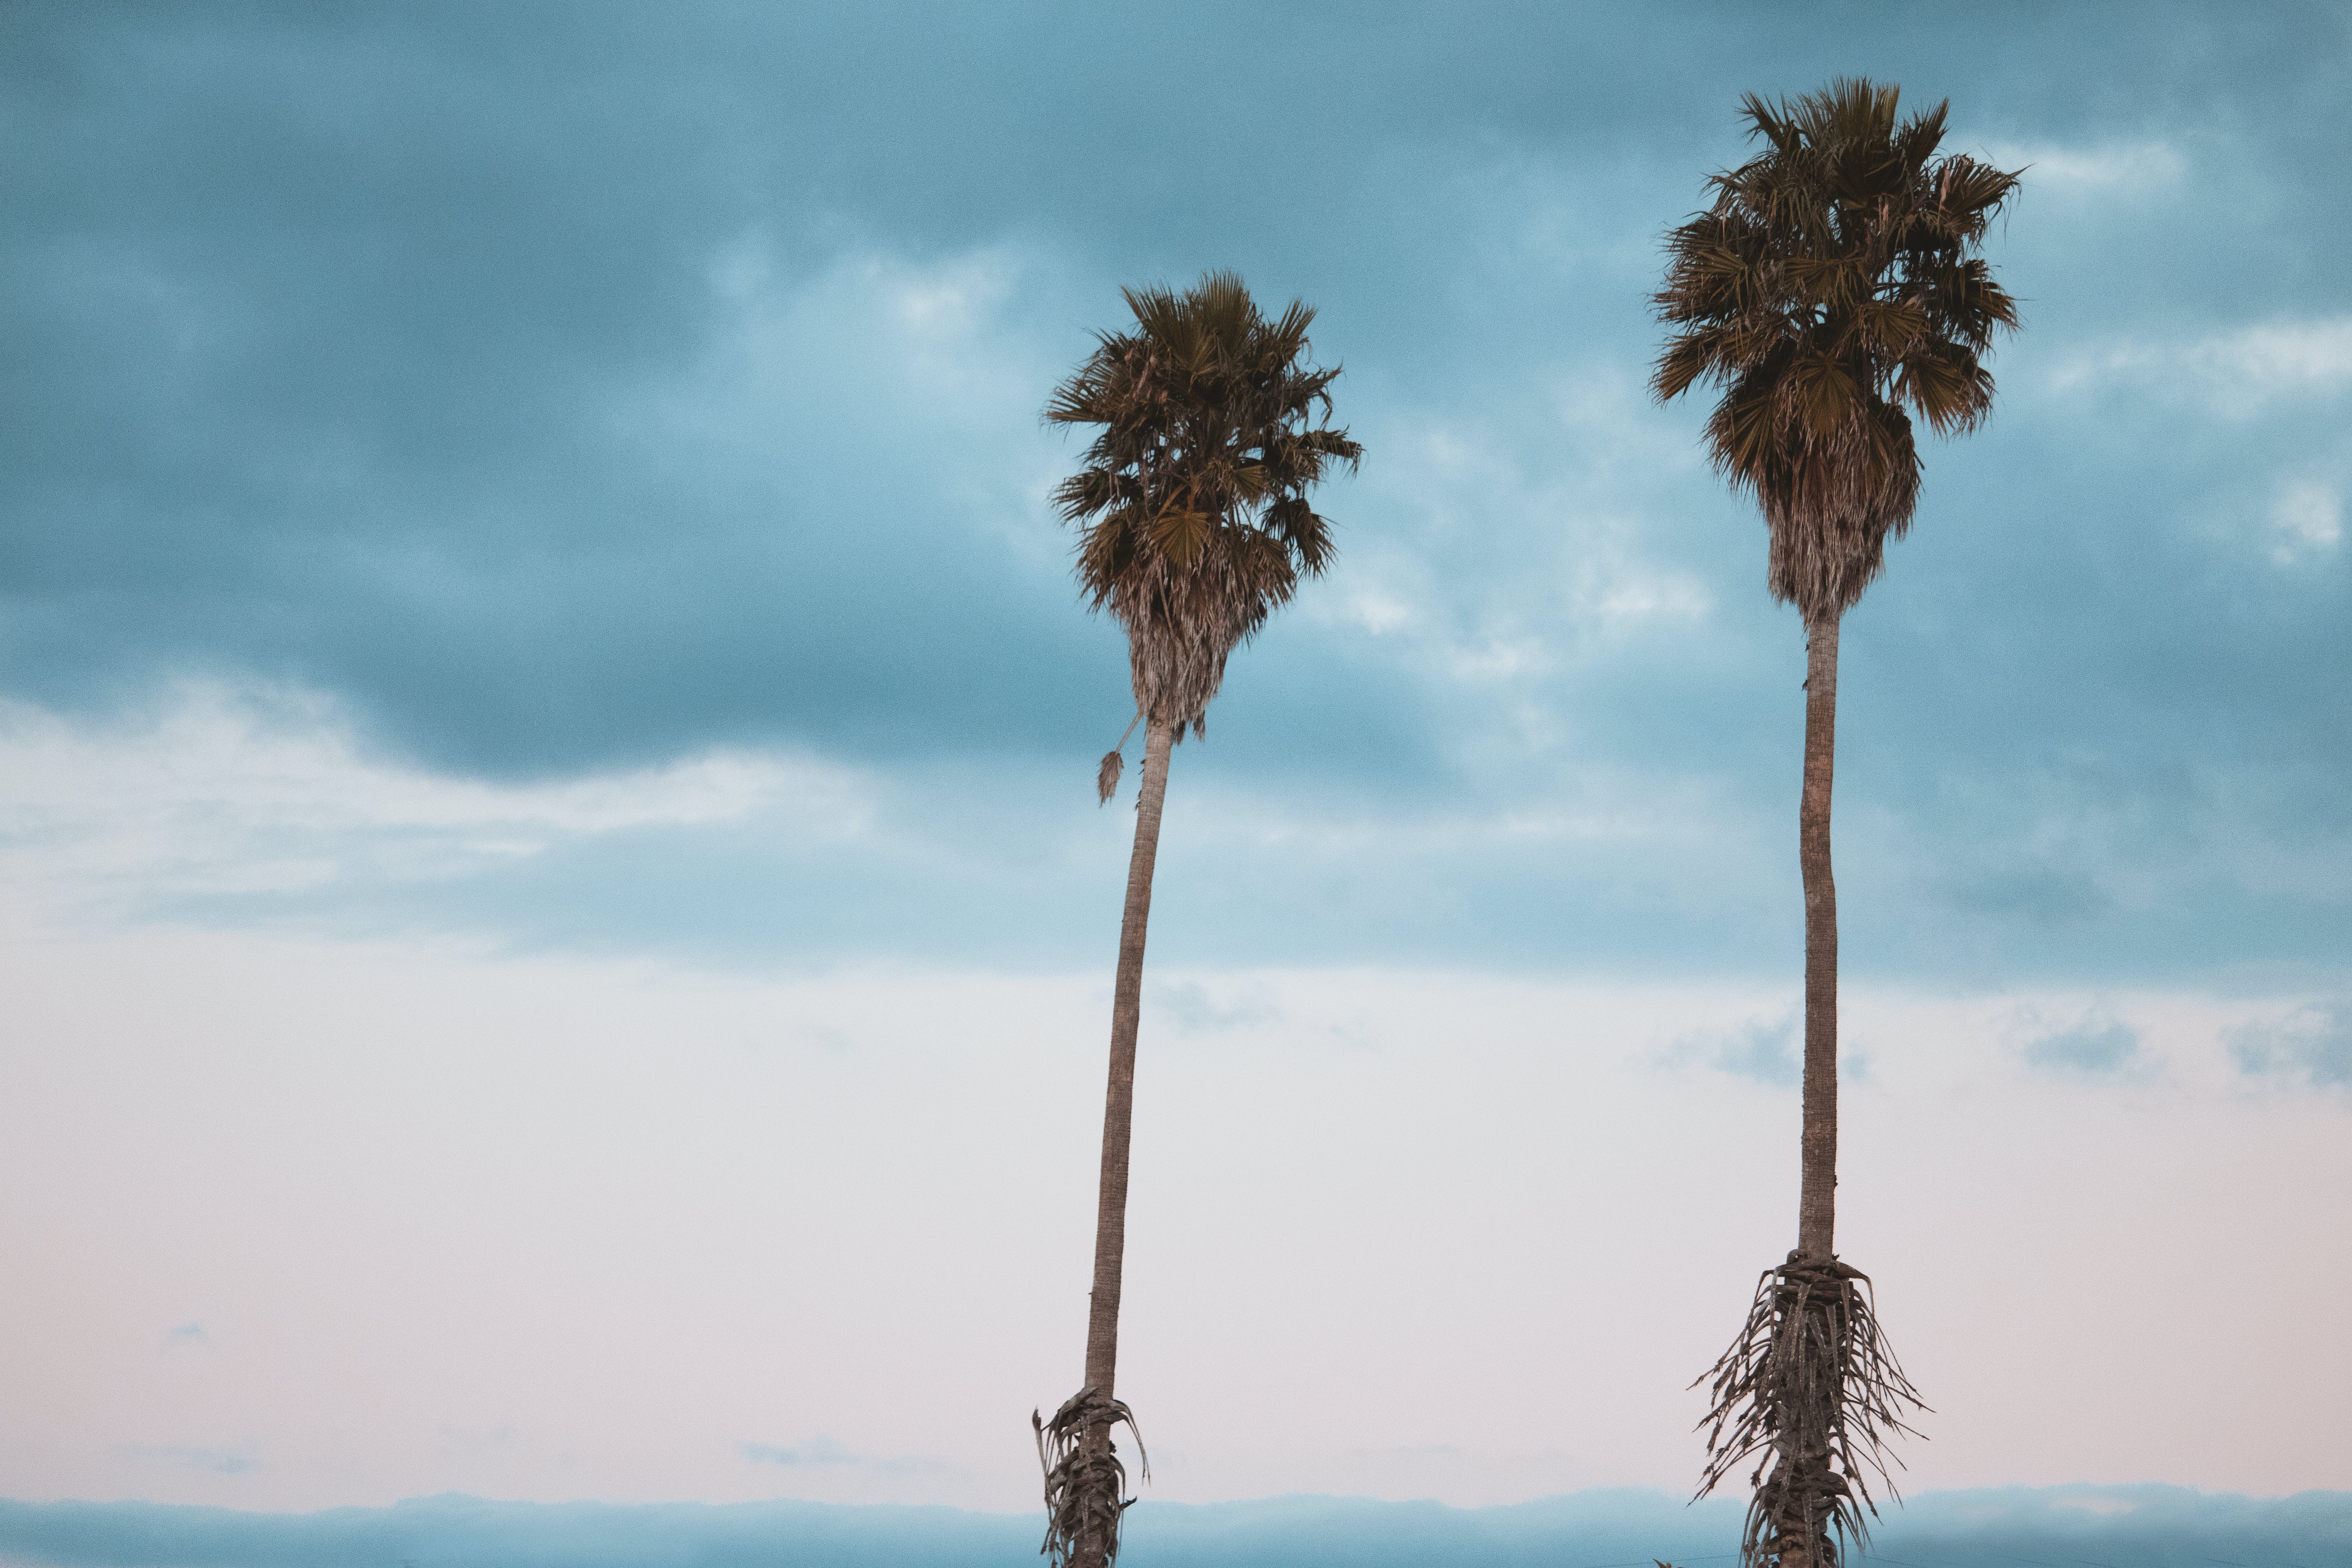 Two Green-leafed Palm Trees